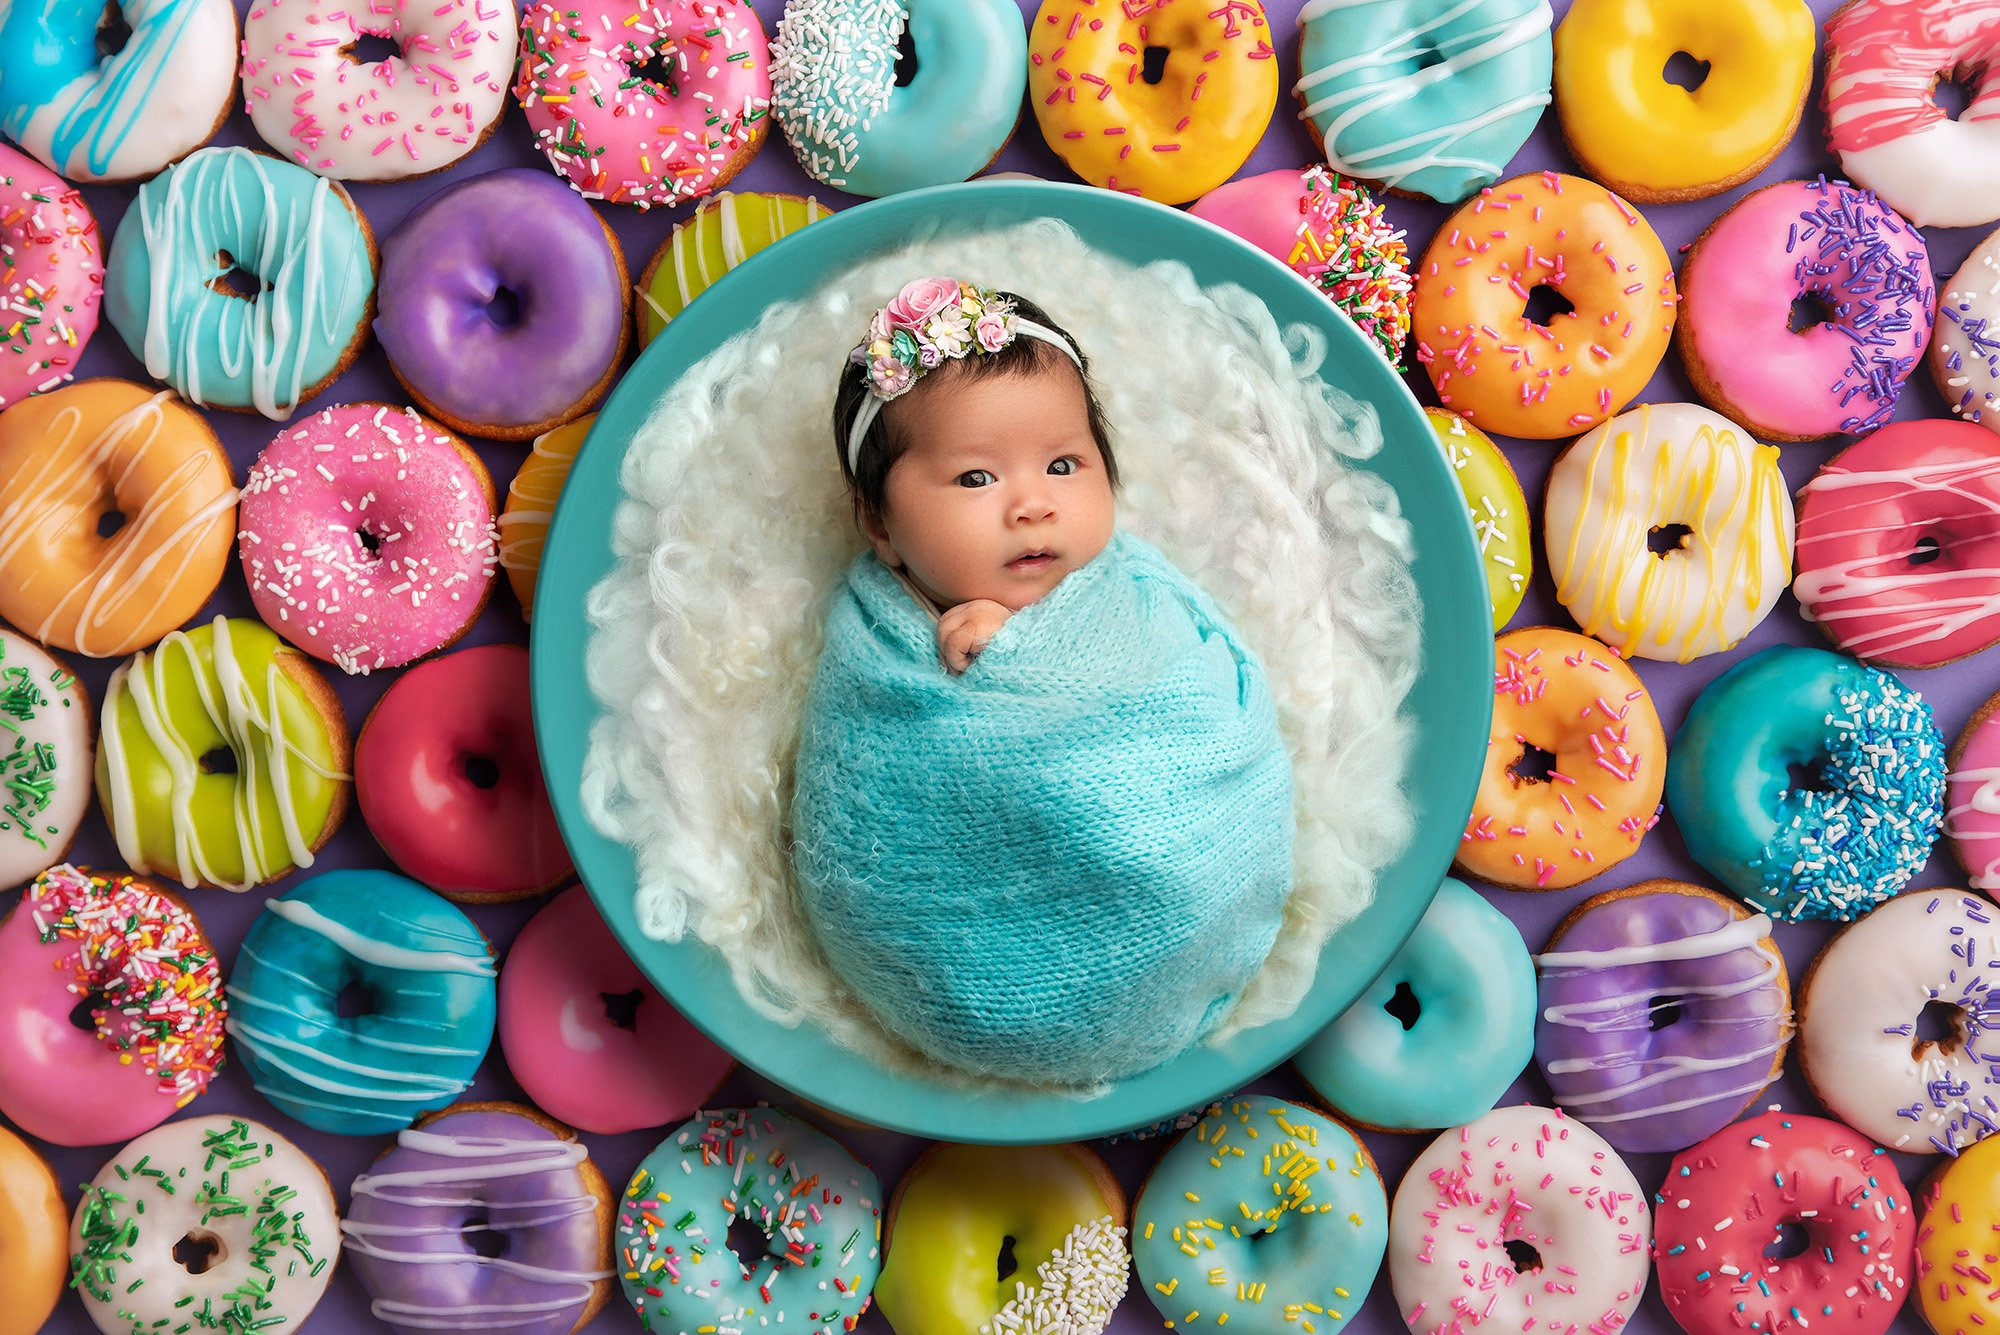 vibrant newborn photo awake newborn baby girl swaddled in an aqua sweater wrap laying in aqua bowl with fuzzy white blanket on a donut background